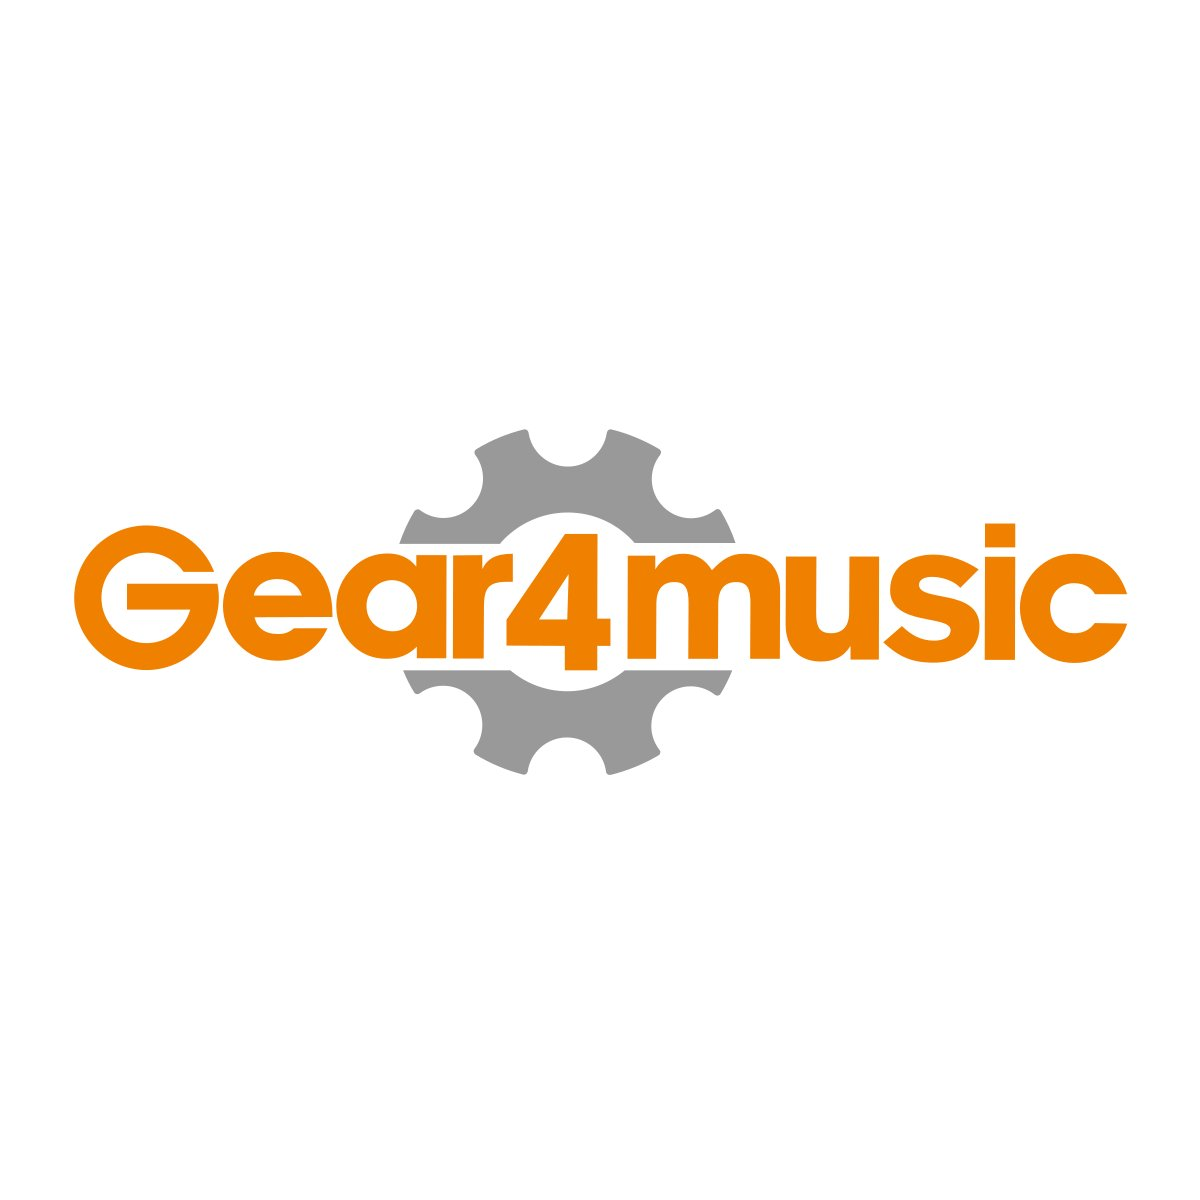 Image of Alto Saxophone by Gear4music Light Gold